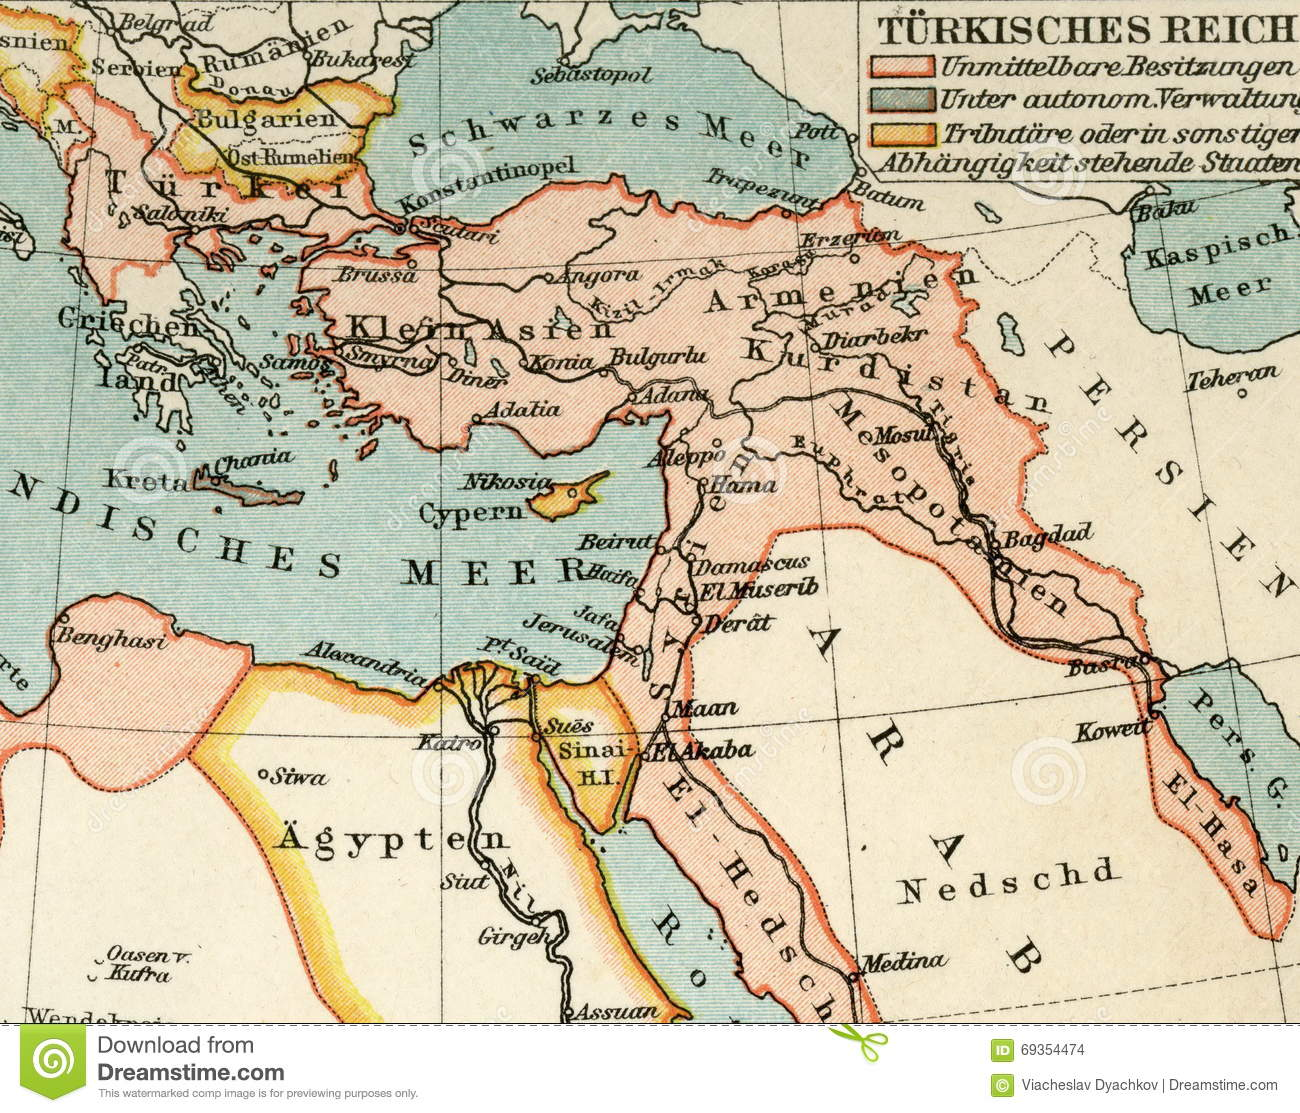 Picture of: Old Map From Geographical Atlas 1890 The Turkish Ottoman Empire Turkey Stock Photo Image Of Border Europe 69354474